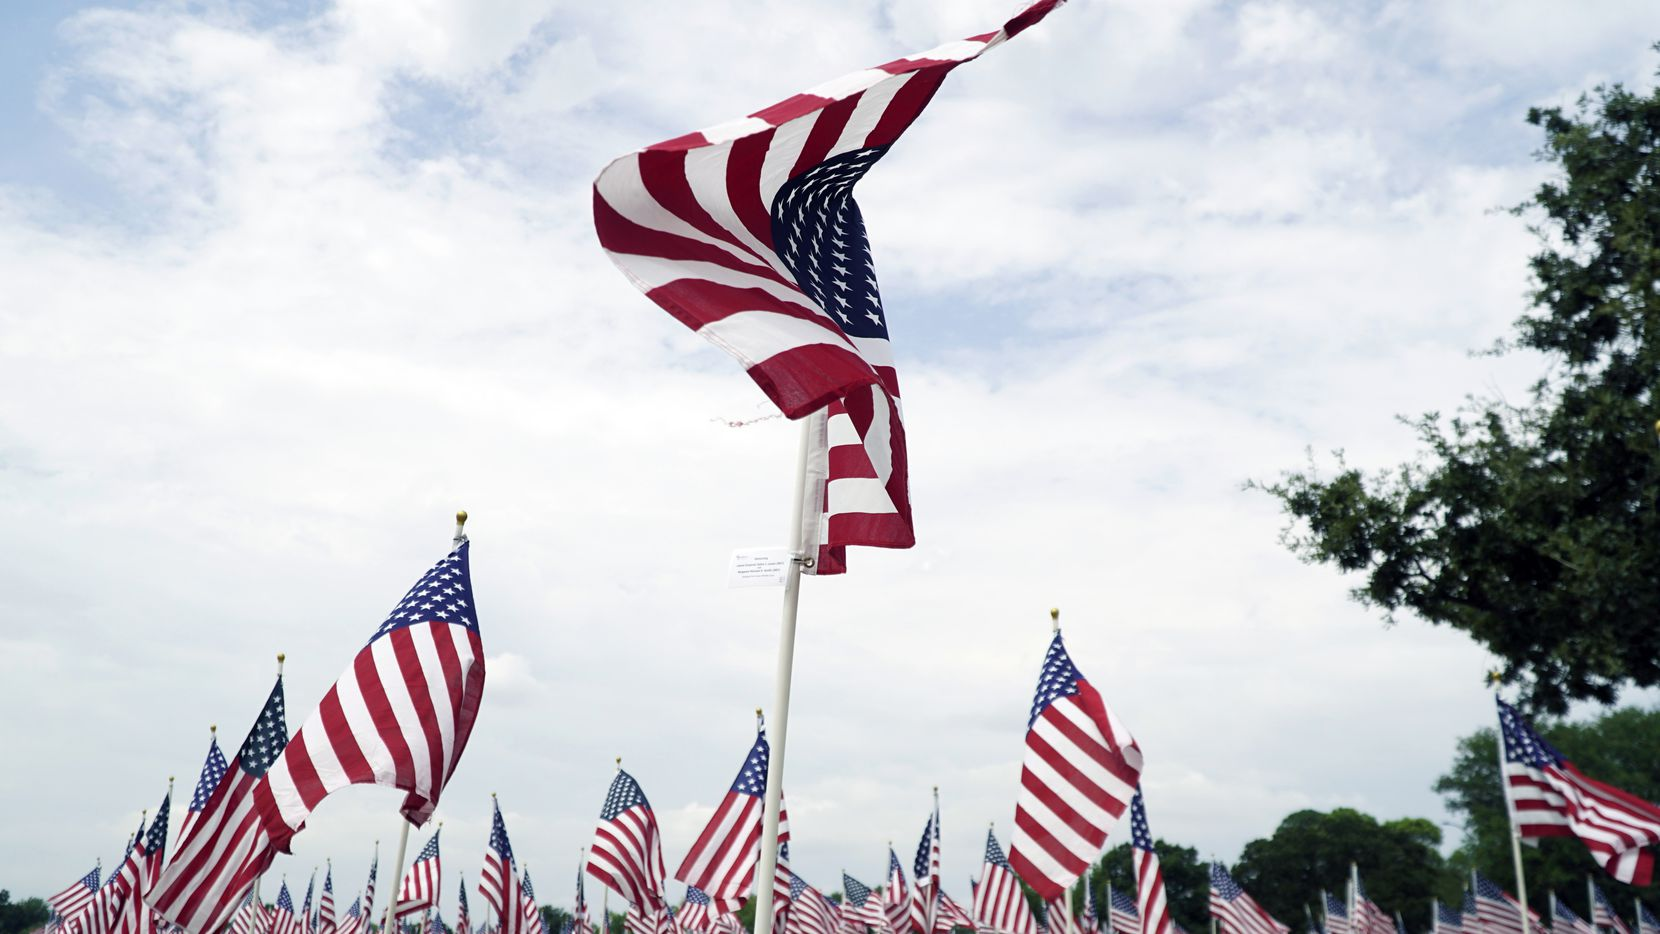 At Veterans Park in Arlington, over 911 flags have been planted to create a Field of Honor that pays respects to the lives lost on Sept. 11, 2001. (Lawrence Jenkins/Special Contributor)